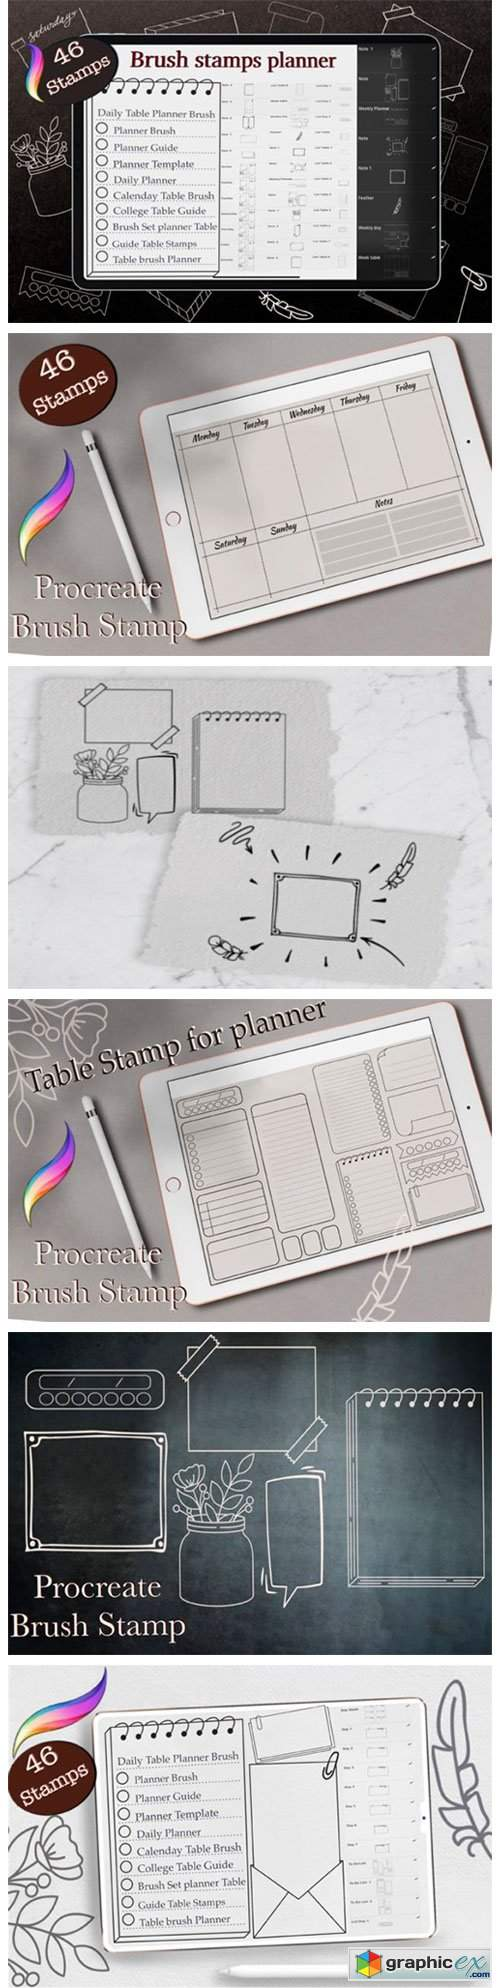 Procreate Planner Stamp Brushes, Template